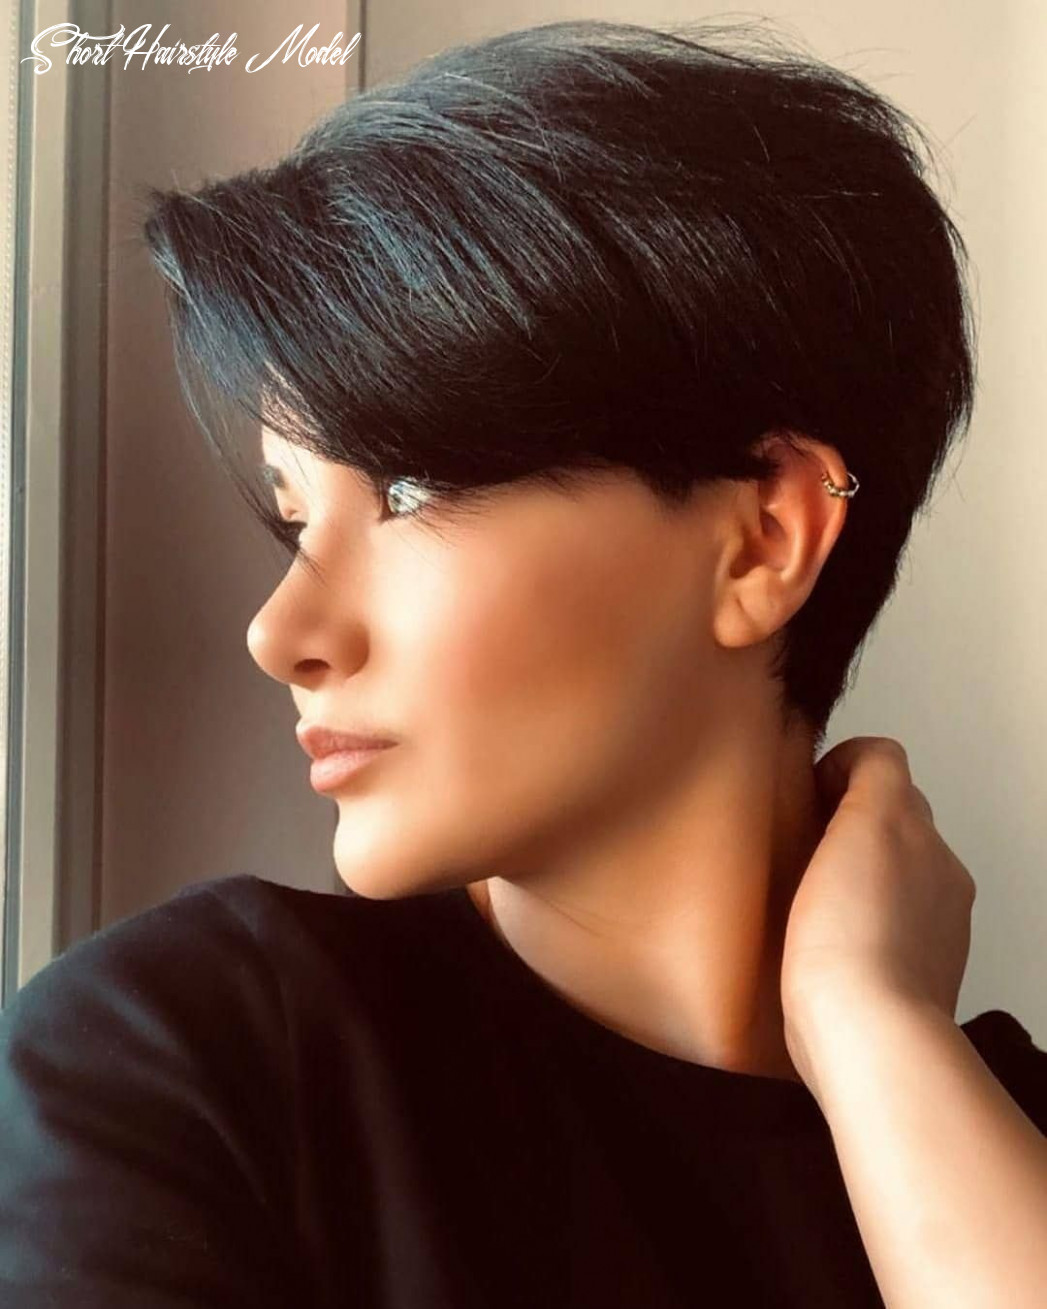 Pin on short hairstyles march 9 short hairstyle model